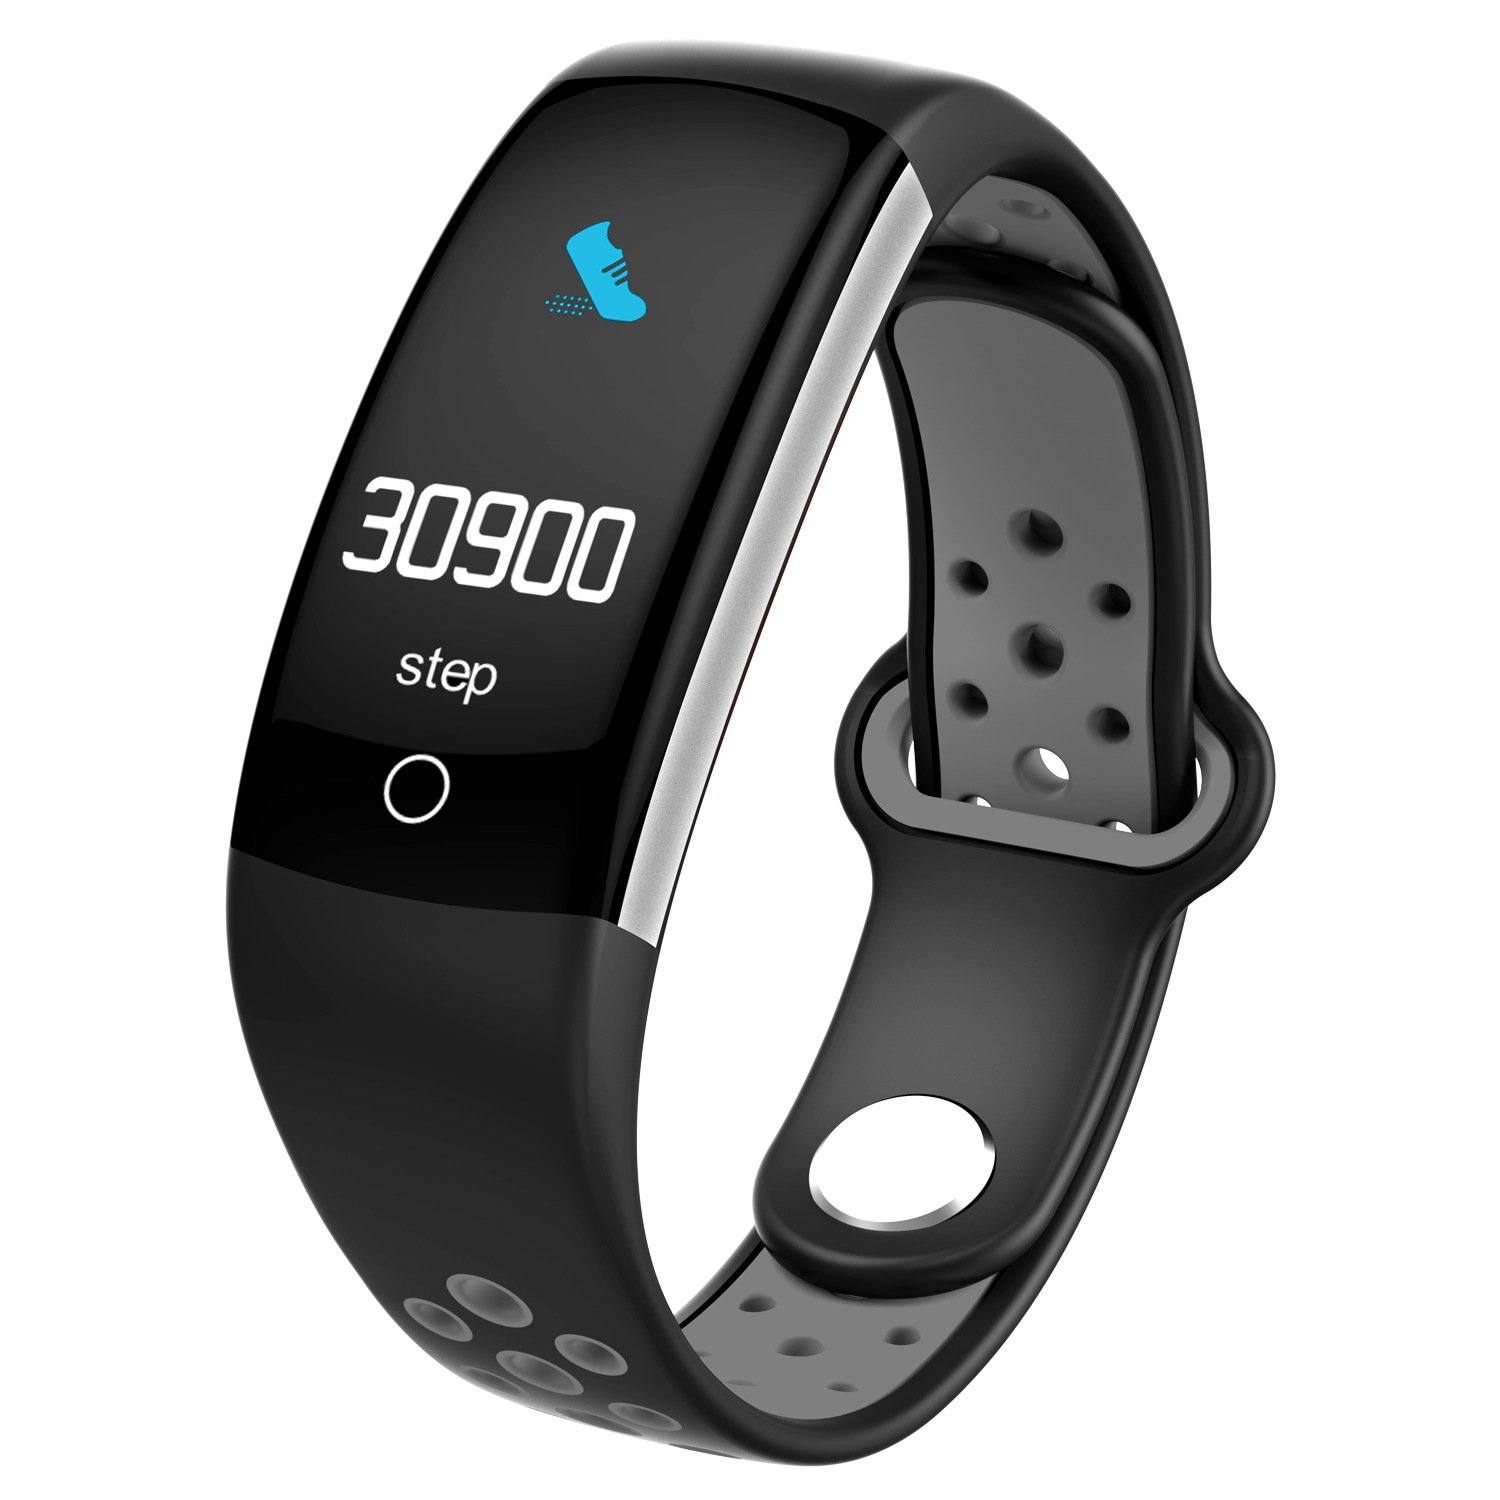 Grey Smart blueeetooth Bracelet, Heart Rate and Blood Pressure Monitoring, IP68 Waterproof Sports Watch, Smart Reminder, Fitness Tracker